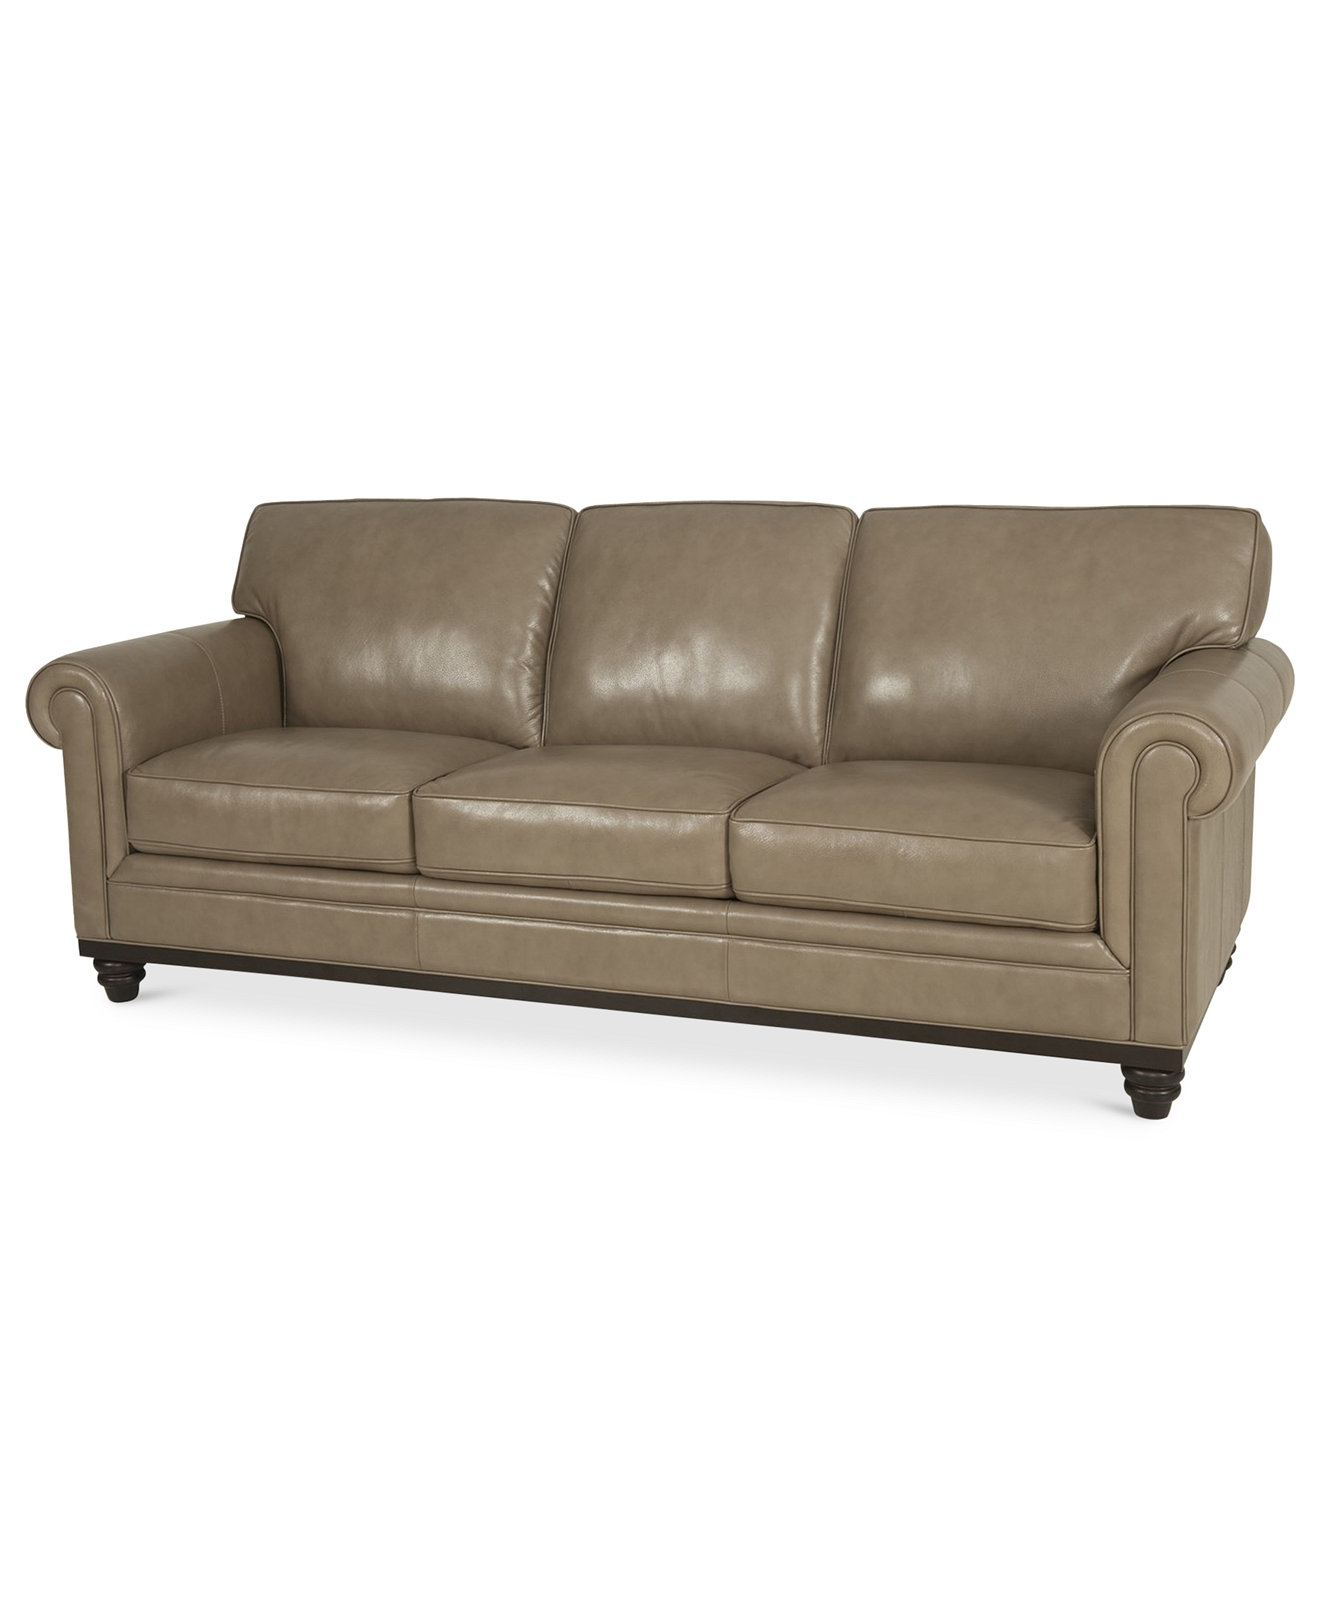 Macys Leather Sofas With Most Popular Sofas: Macys Leather Chair (View 13 of 20)